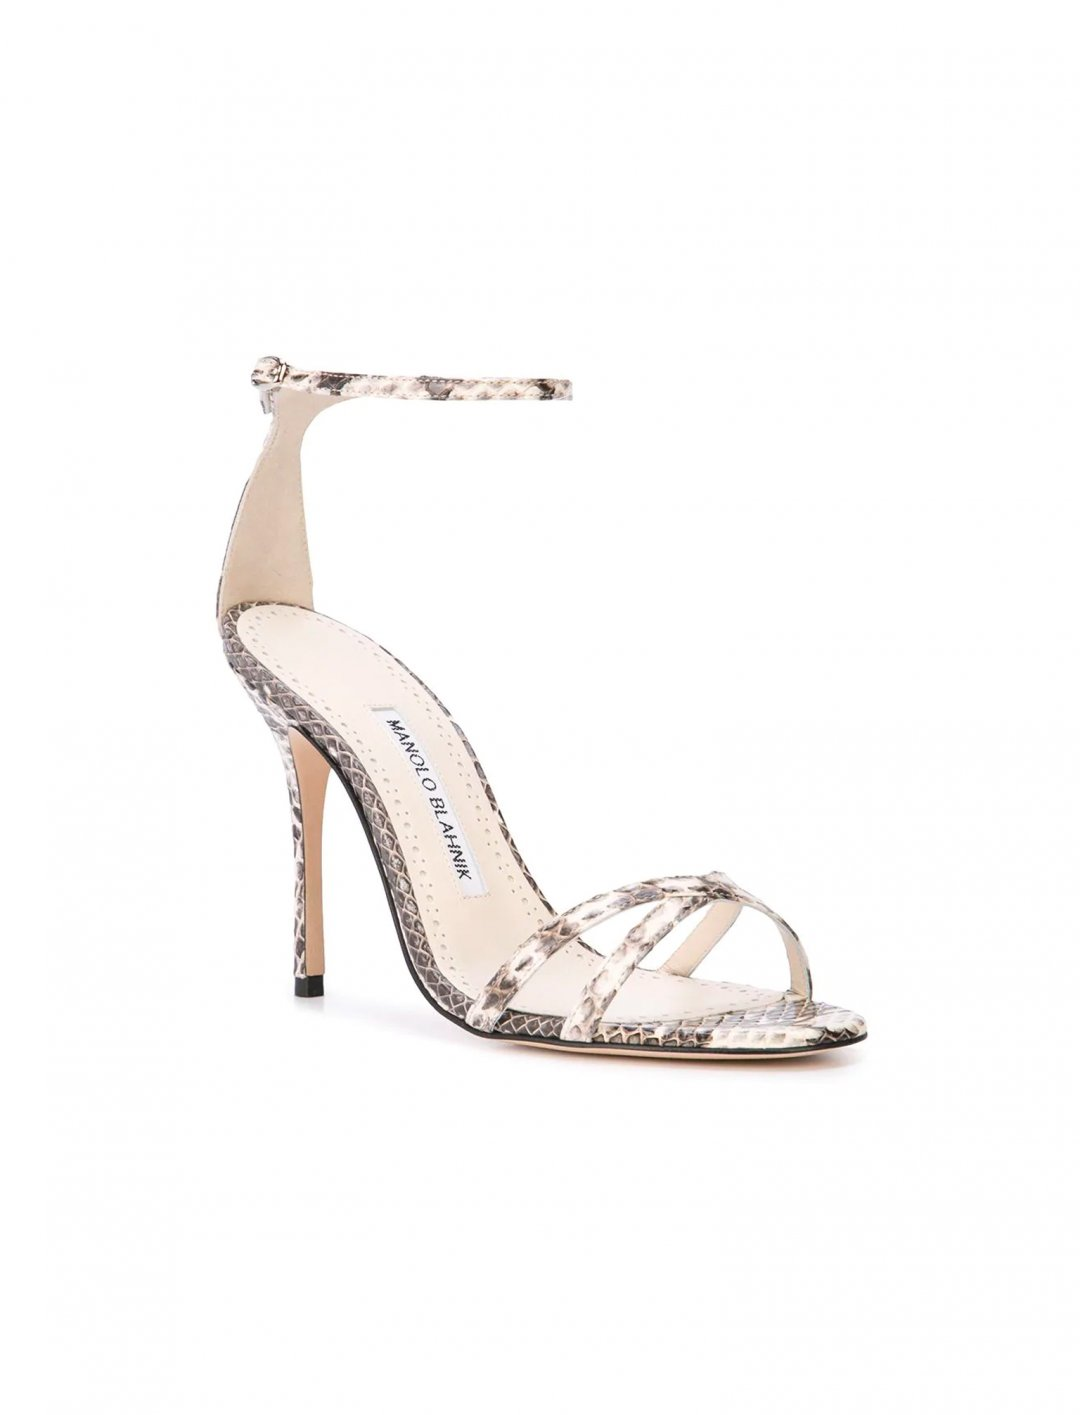 "Snakeskin Sandals {""id"":12,""product_section_id"":1,""name"":""Shoes"",""order"":12} Manolo Blahnik"